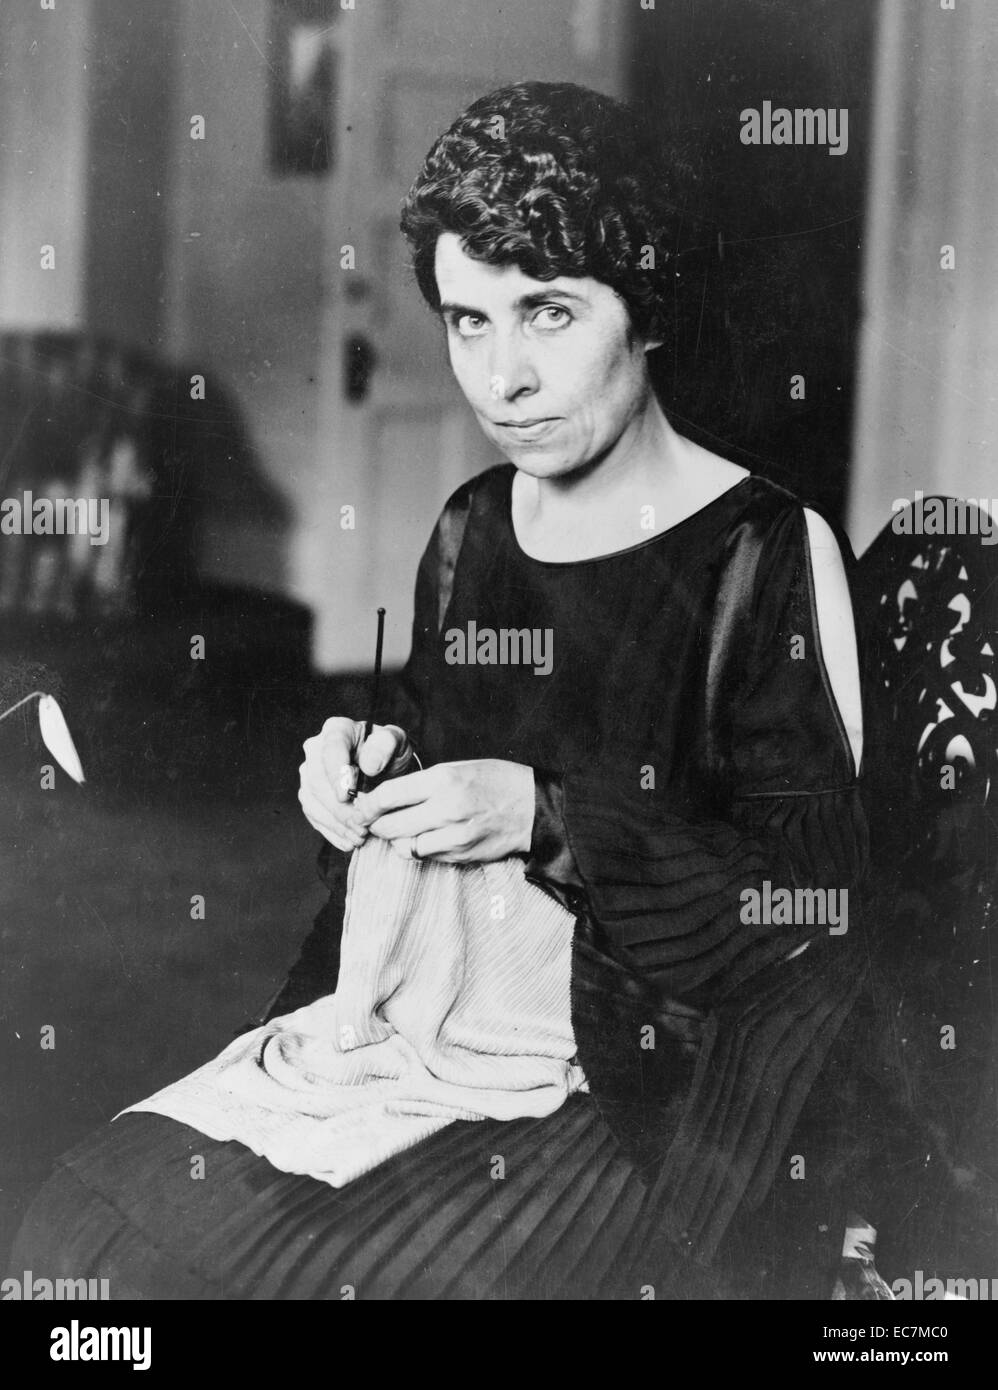 Grace Coolidge the wife of President Calvin Coolidge. Calvin Coolidge was the 30th President of the United States. Stock Photo